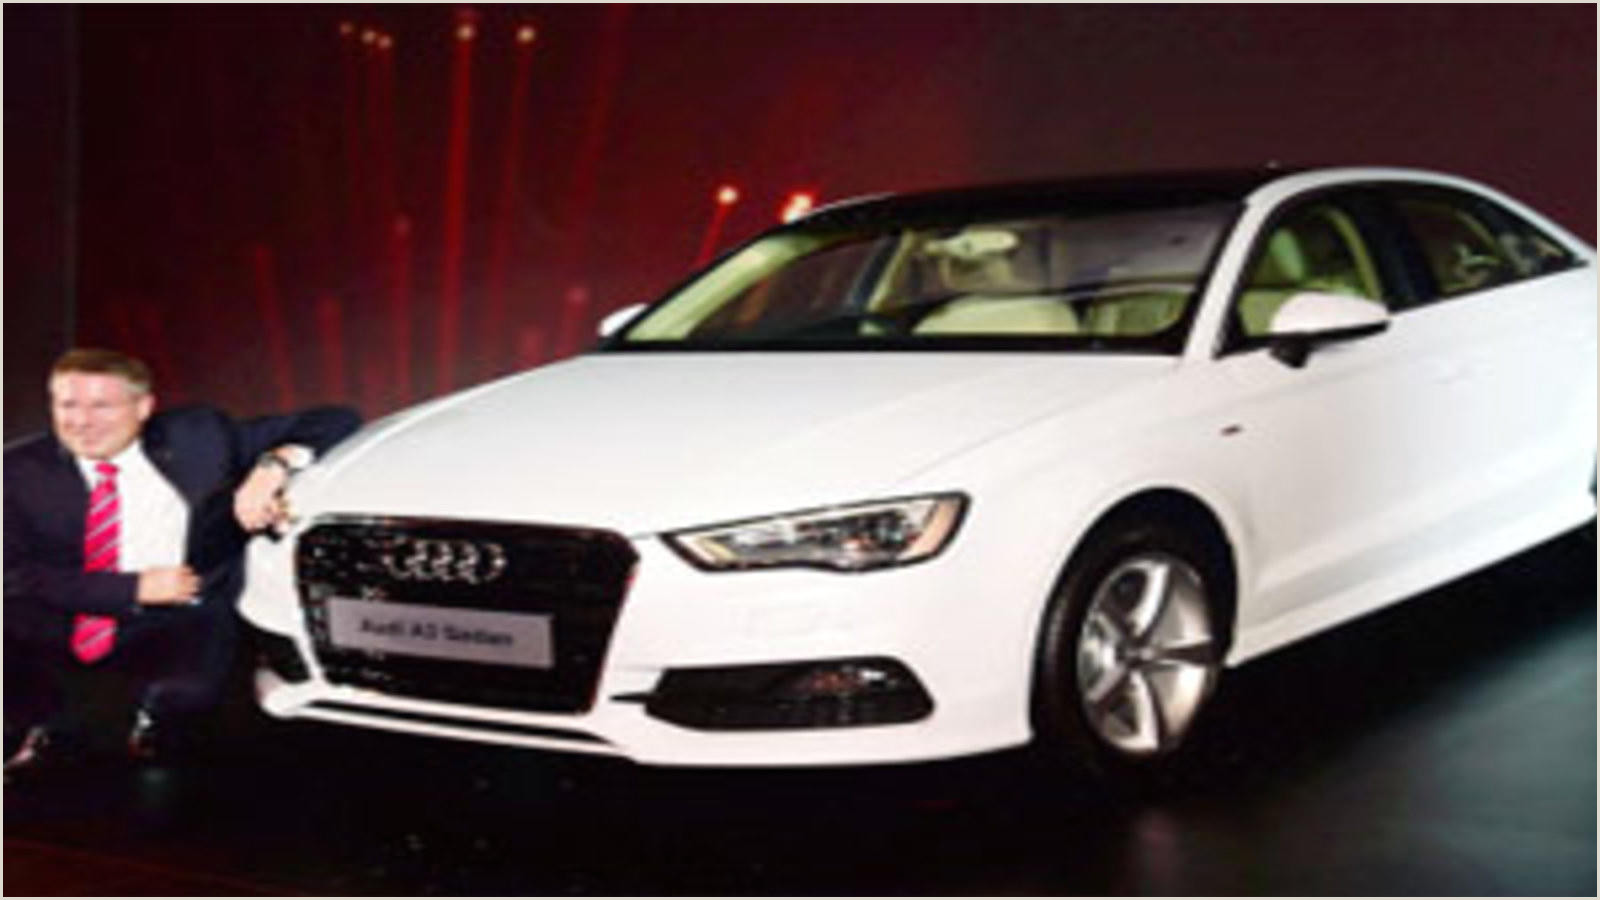 New Green Card Design 2020 Audi Launches A3 Sedan Price Starting At Rs 22 95 Lakh